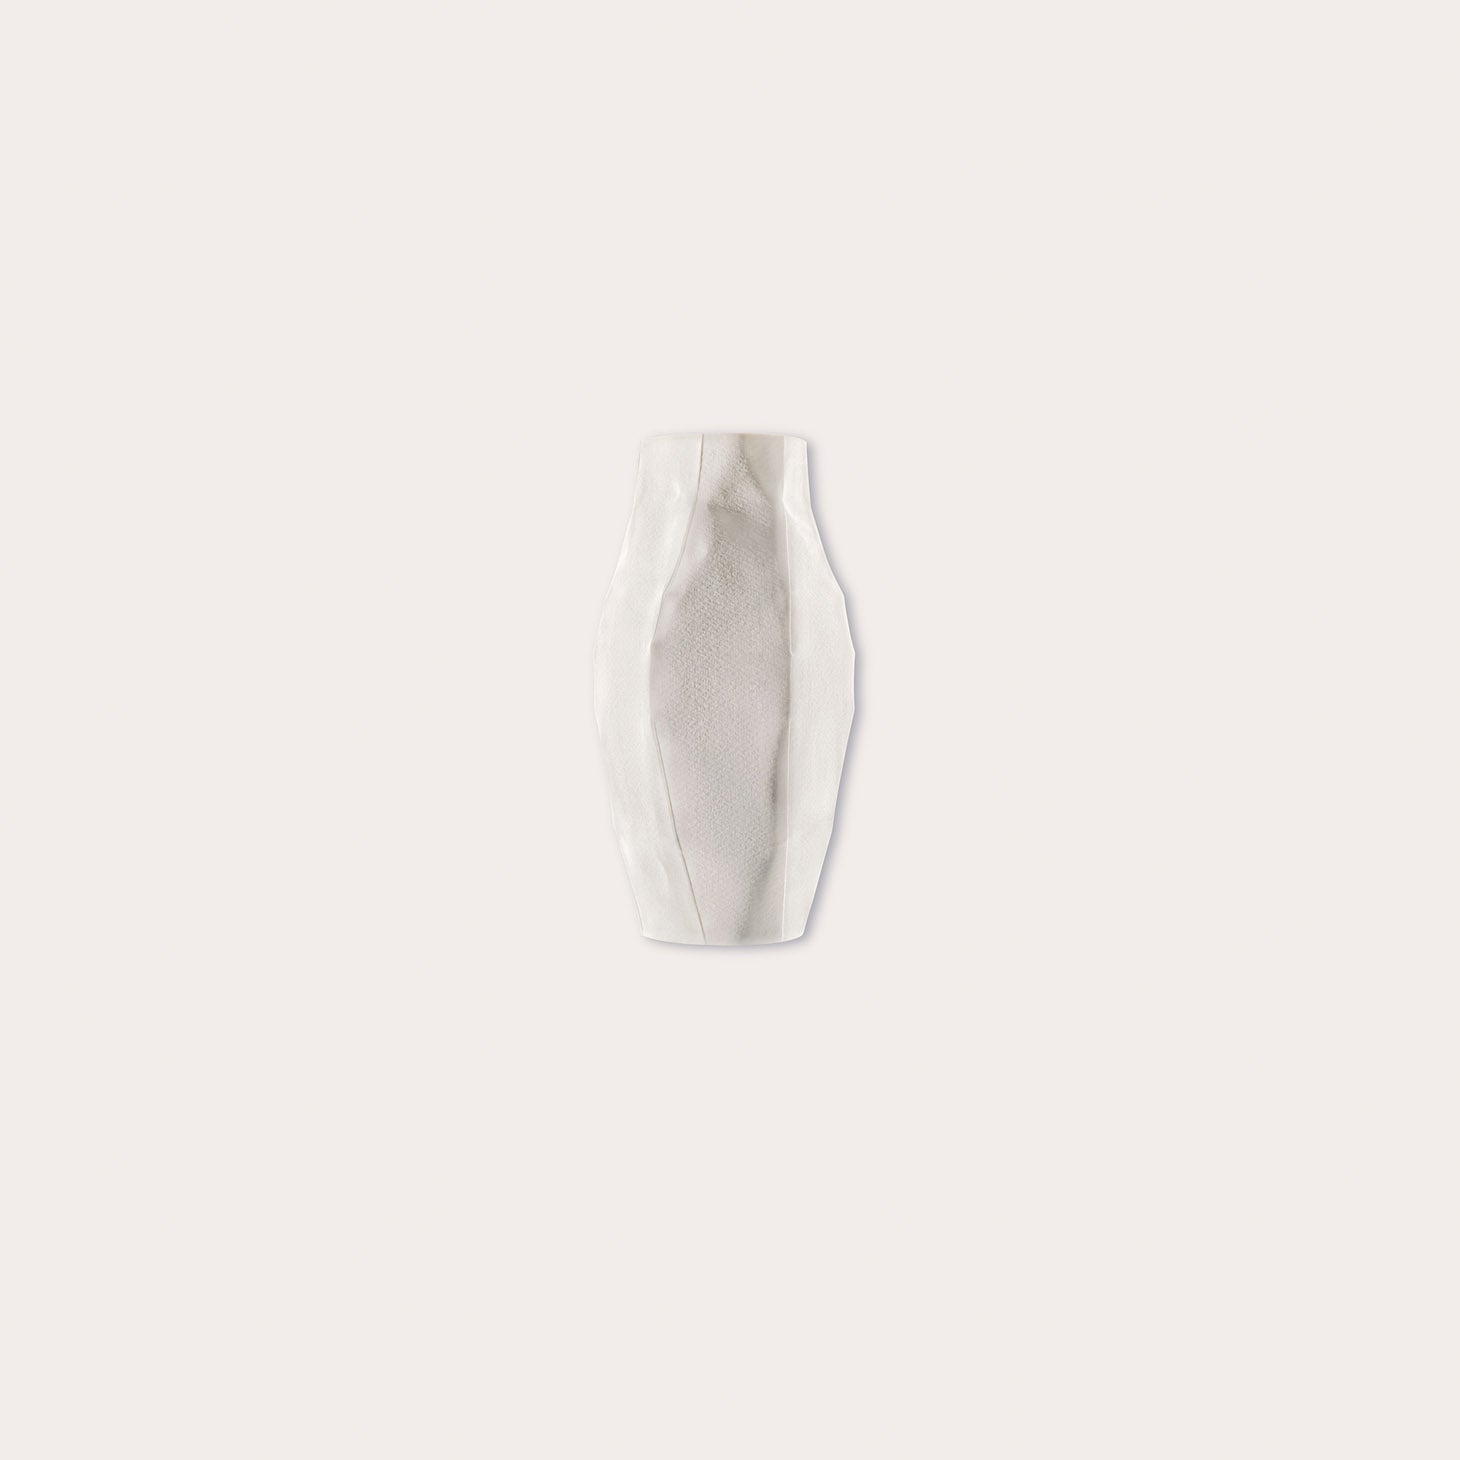 Lightscape Vase S Accessories Nymphenburg Designer Furniture Sku: 542-100-10023